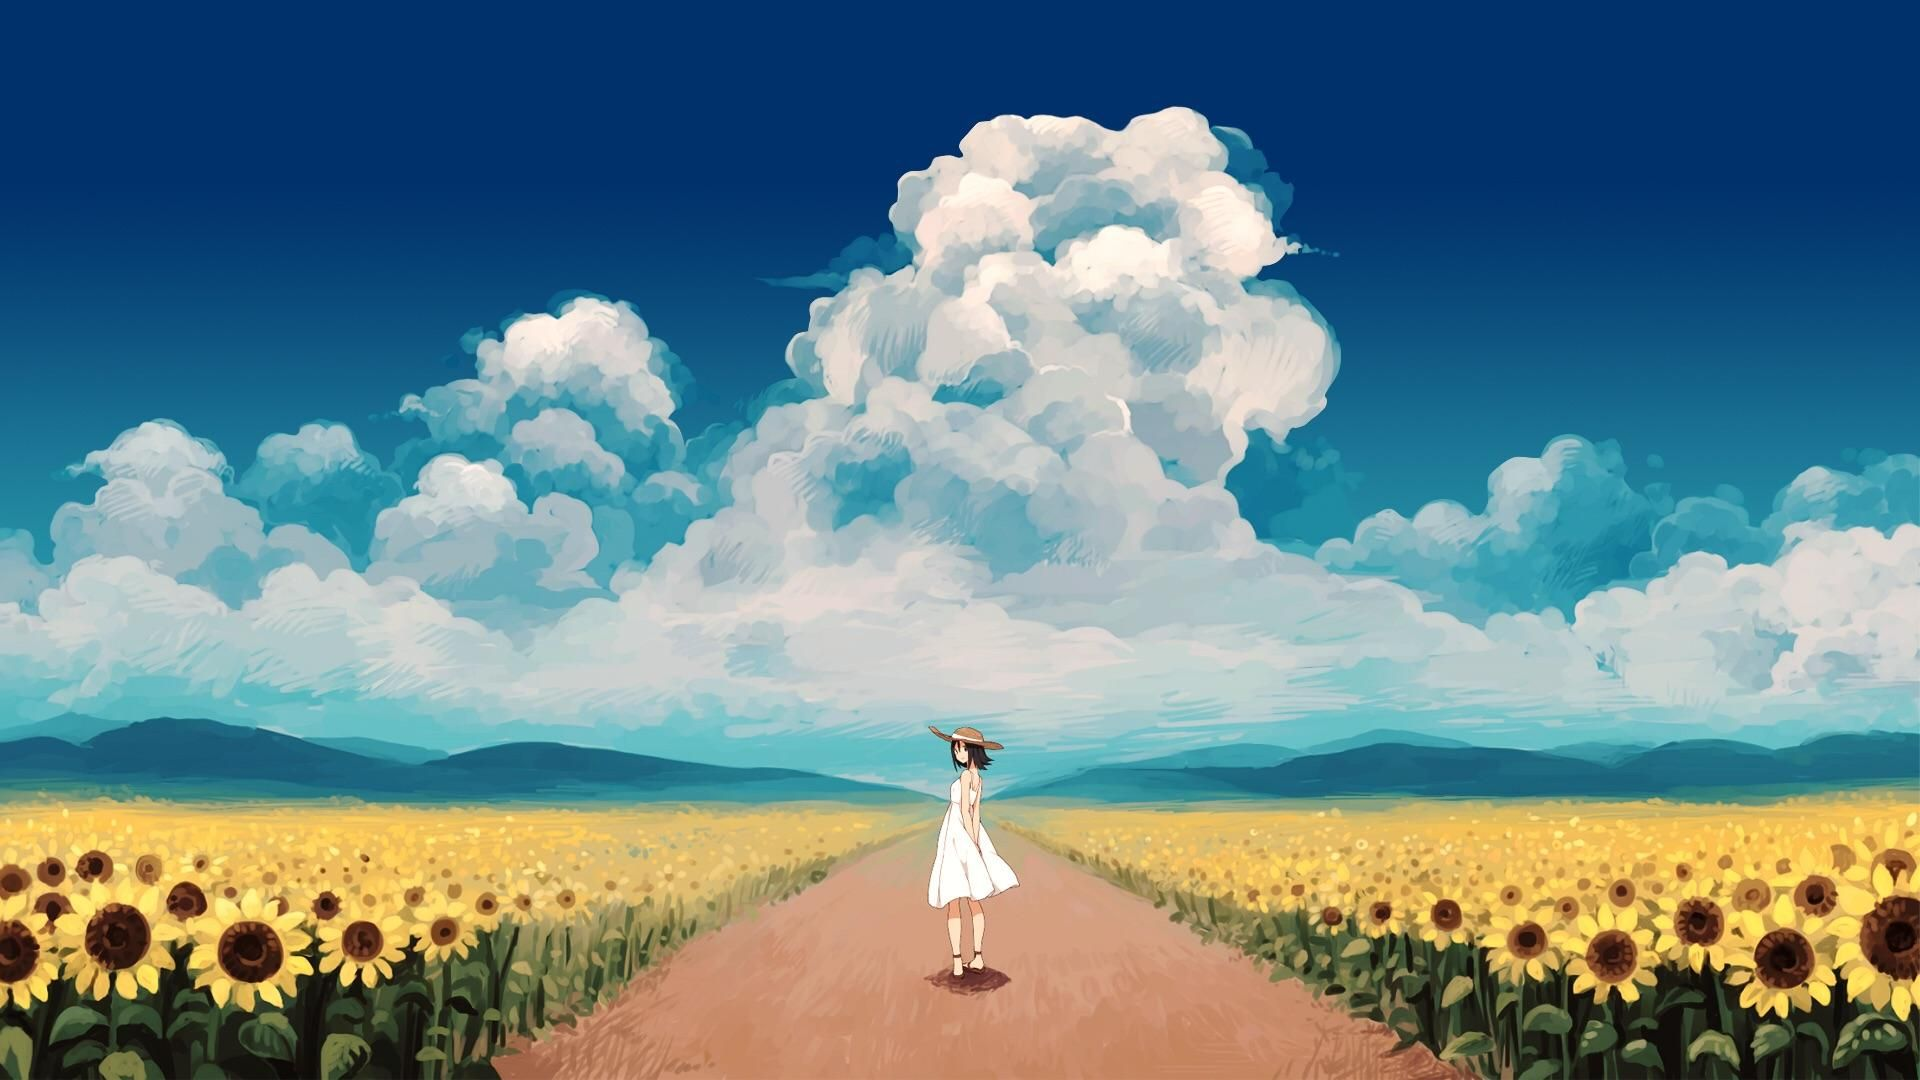 Anime Sun Flower Field 1920x1080 Anime Scenery Landscape Wallpaper Scenery